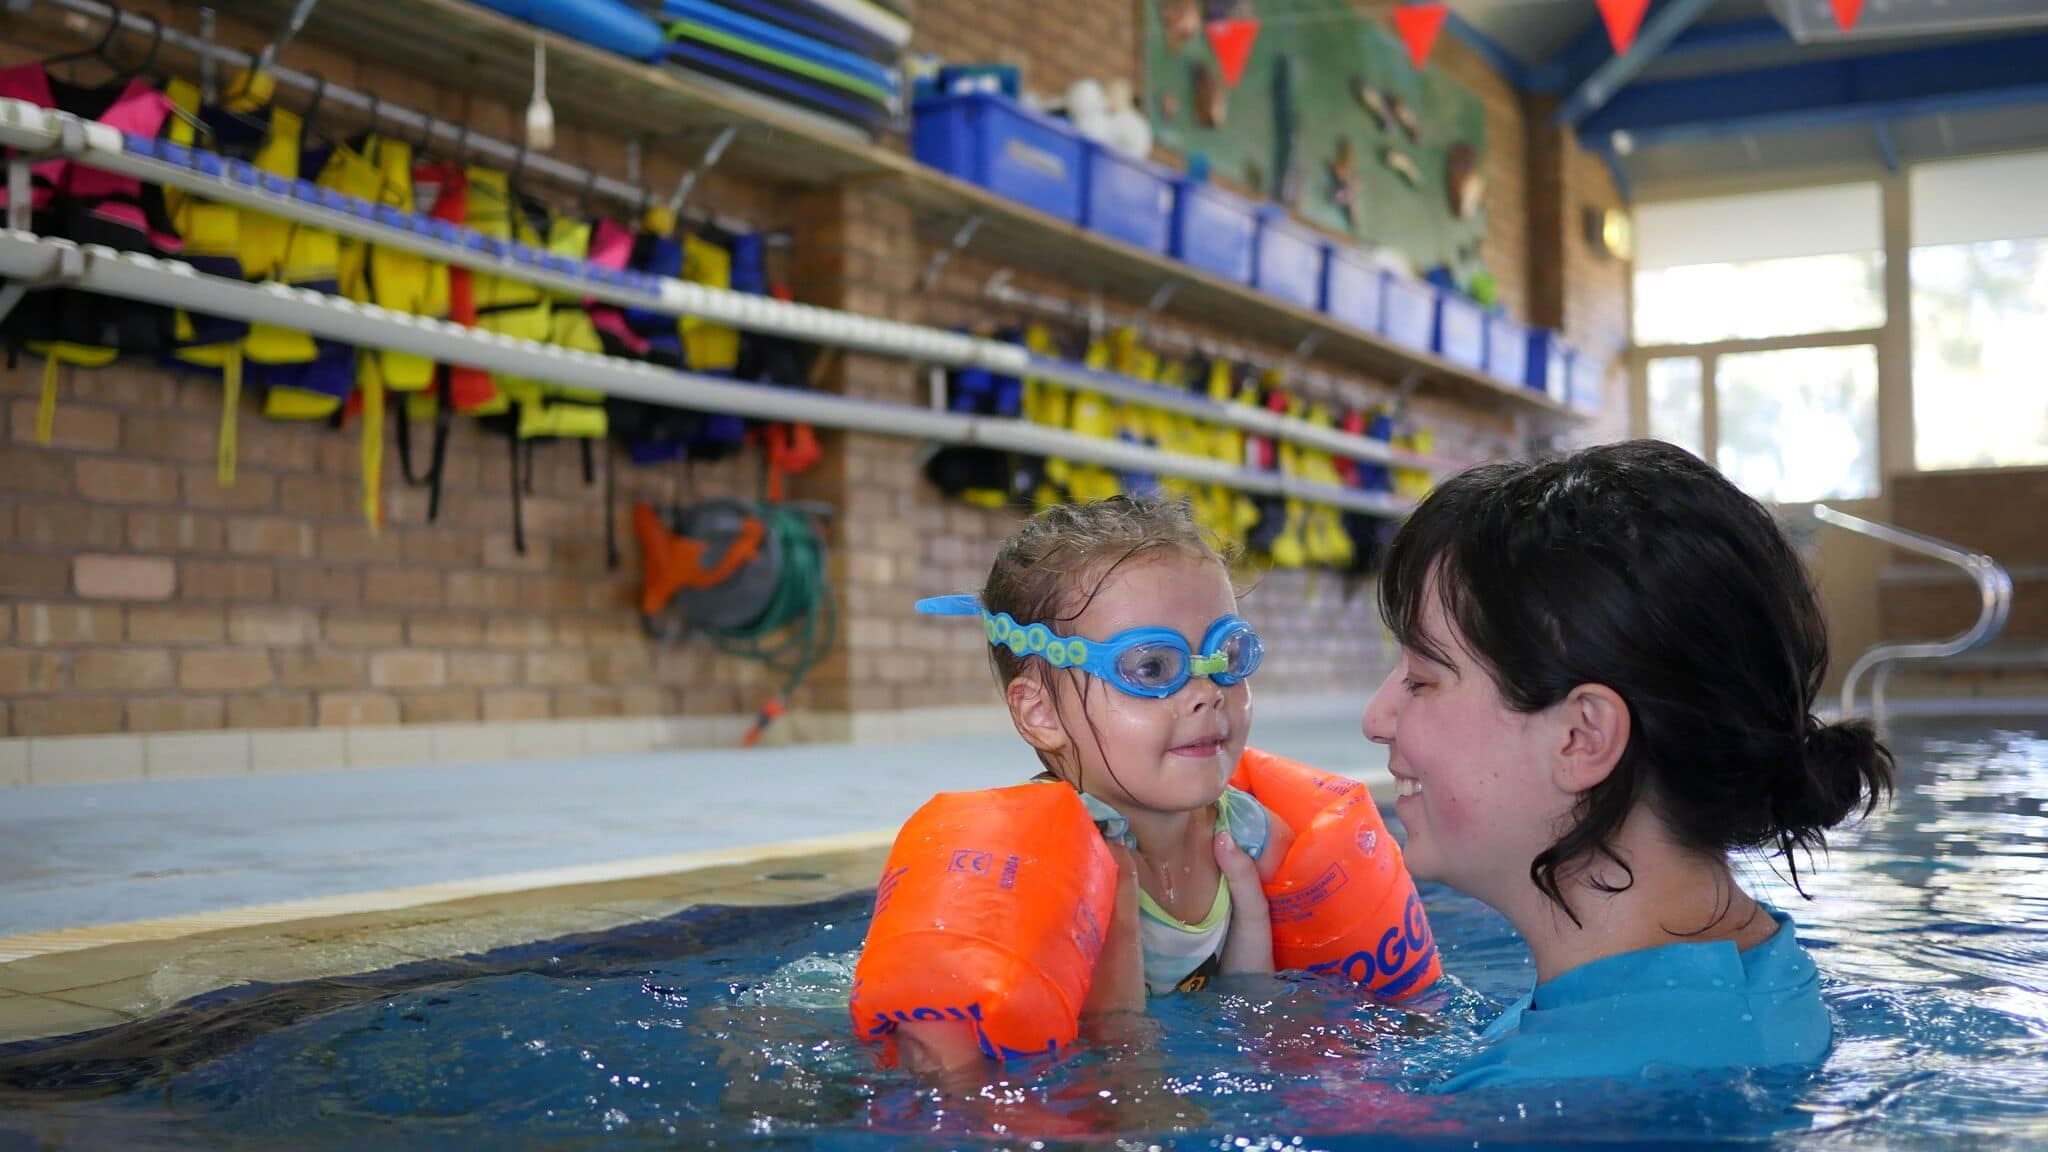 Female swimming teacher working with a young girl in a swimming pool during a lesson.